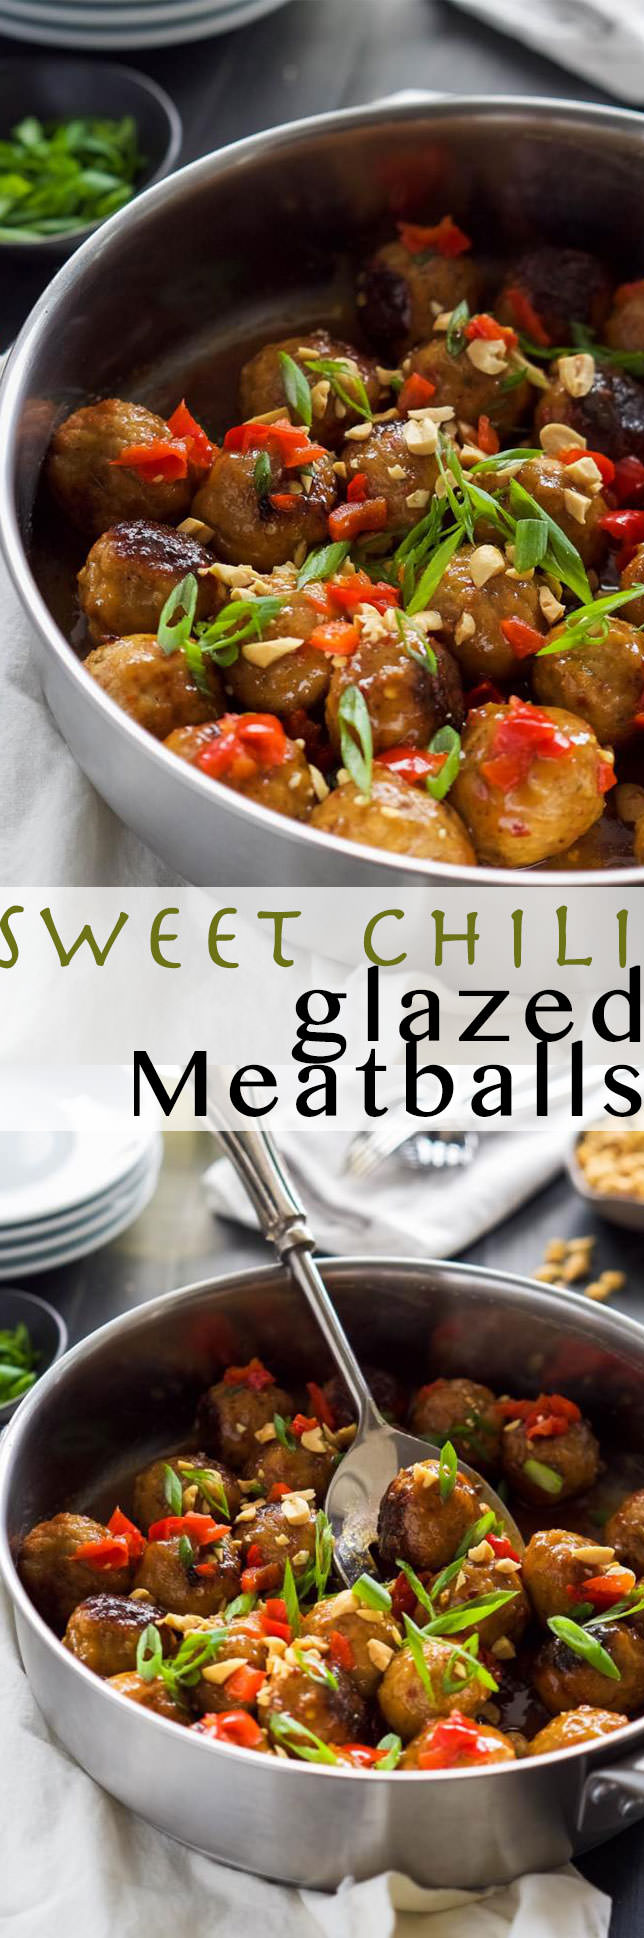 Sweet-Chili-Glazed-Meatballs